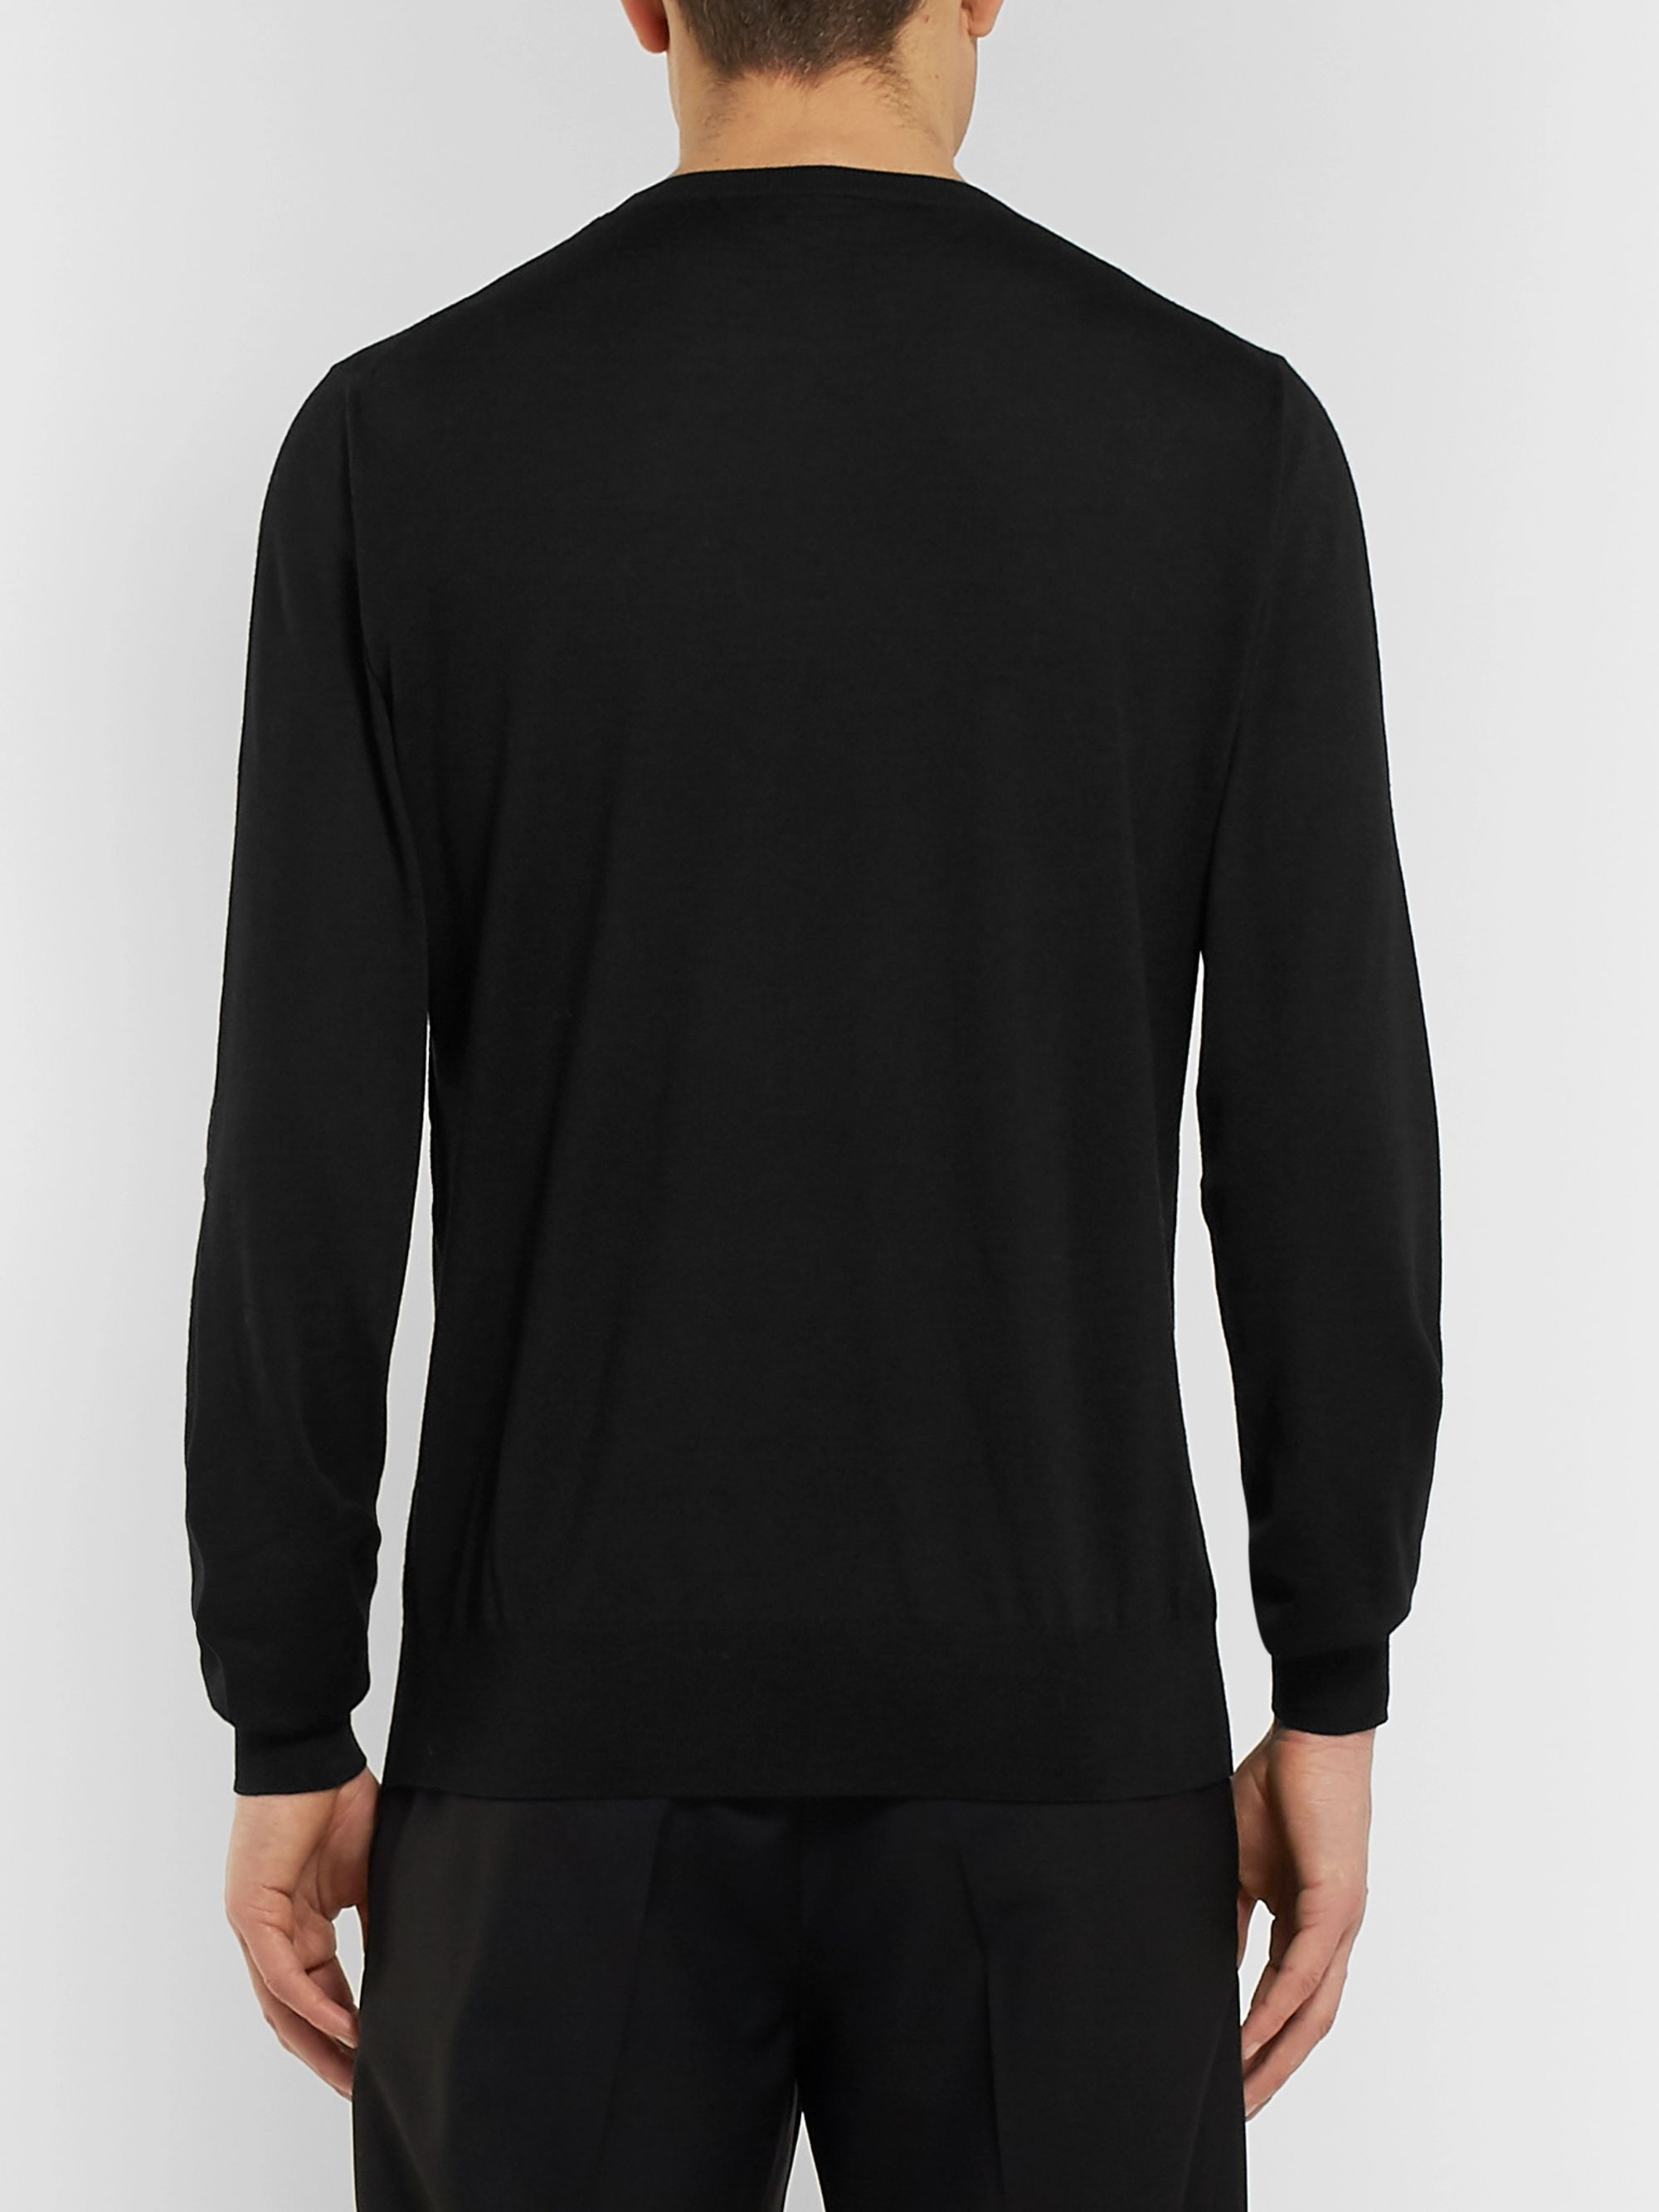 Alexander McQueen Slim-Fit Embroidered Wool Sweater